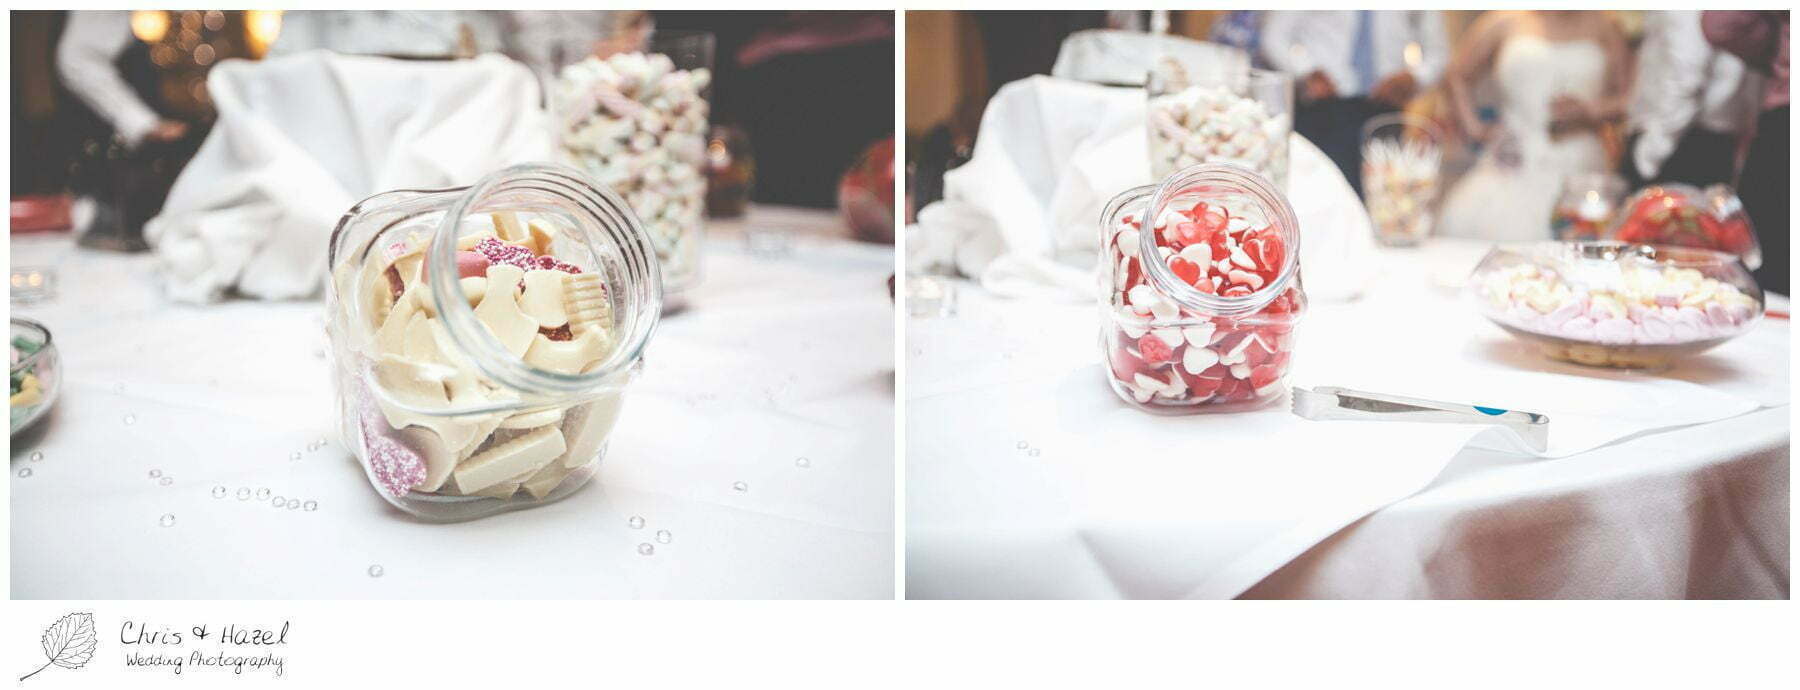 wedding sweet table, bagden hall wedding venue, documentary wedding photography, denny dale, huddersfield, Wedding Photographer, Bagden Hall, Wedding Photography, Chris and Hazel Wedding Photography, Alex tomenson, Vicky hunt